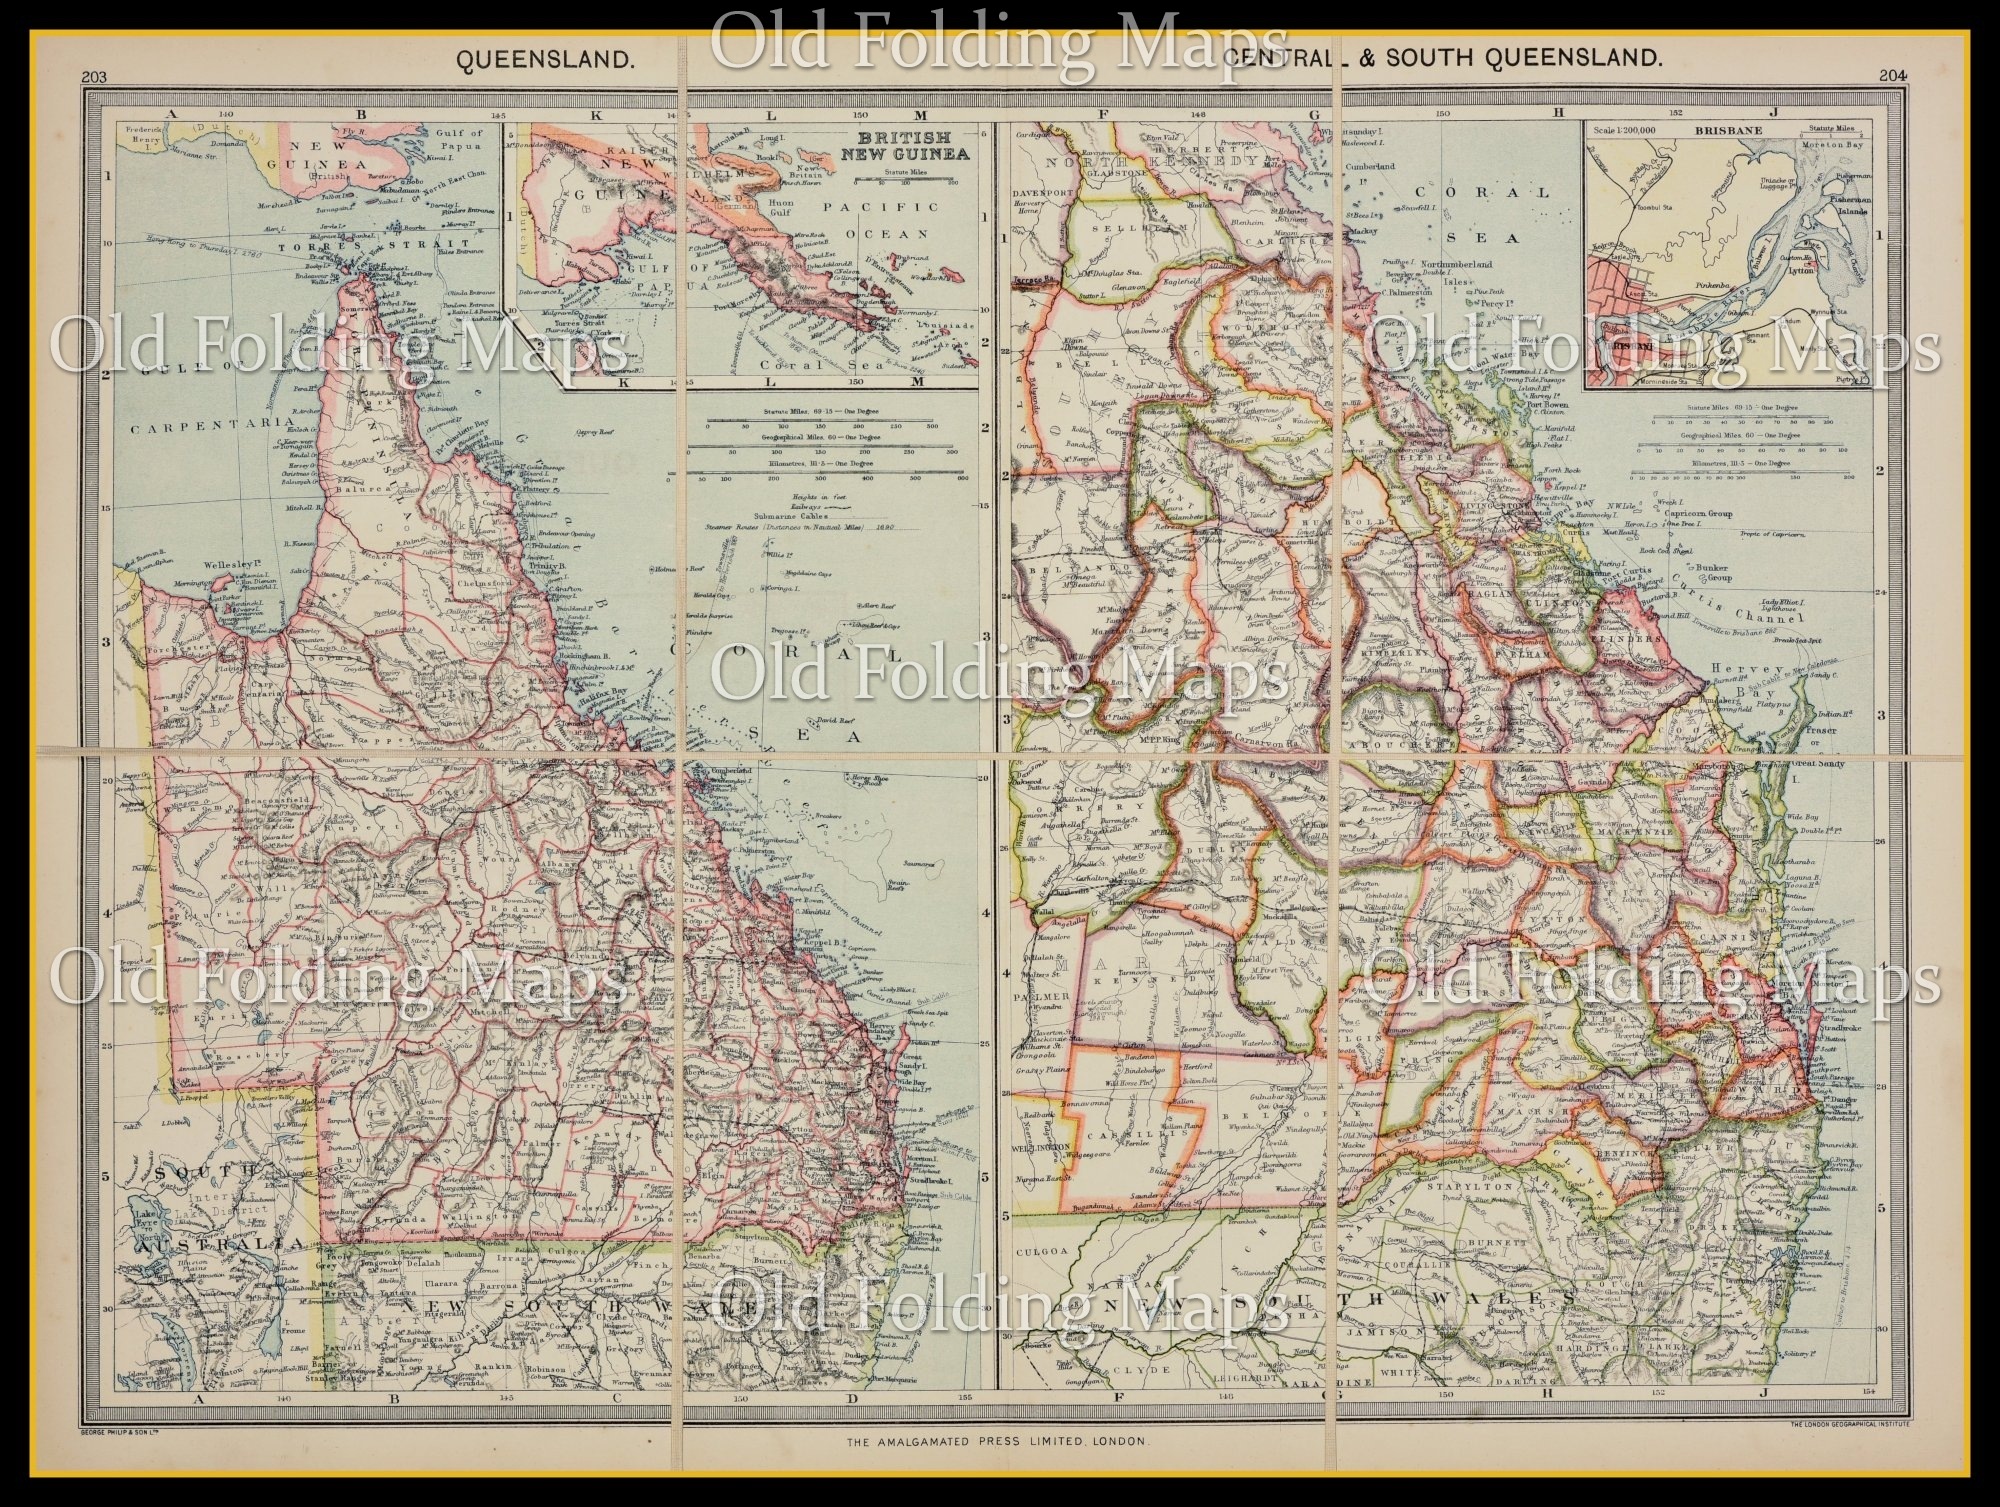 Old Map of Queensland, Australia circa 1900